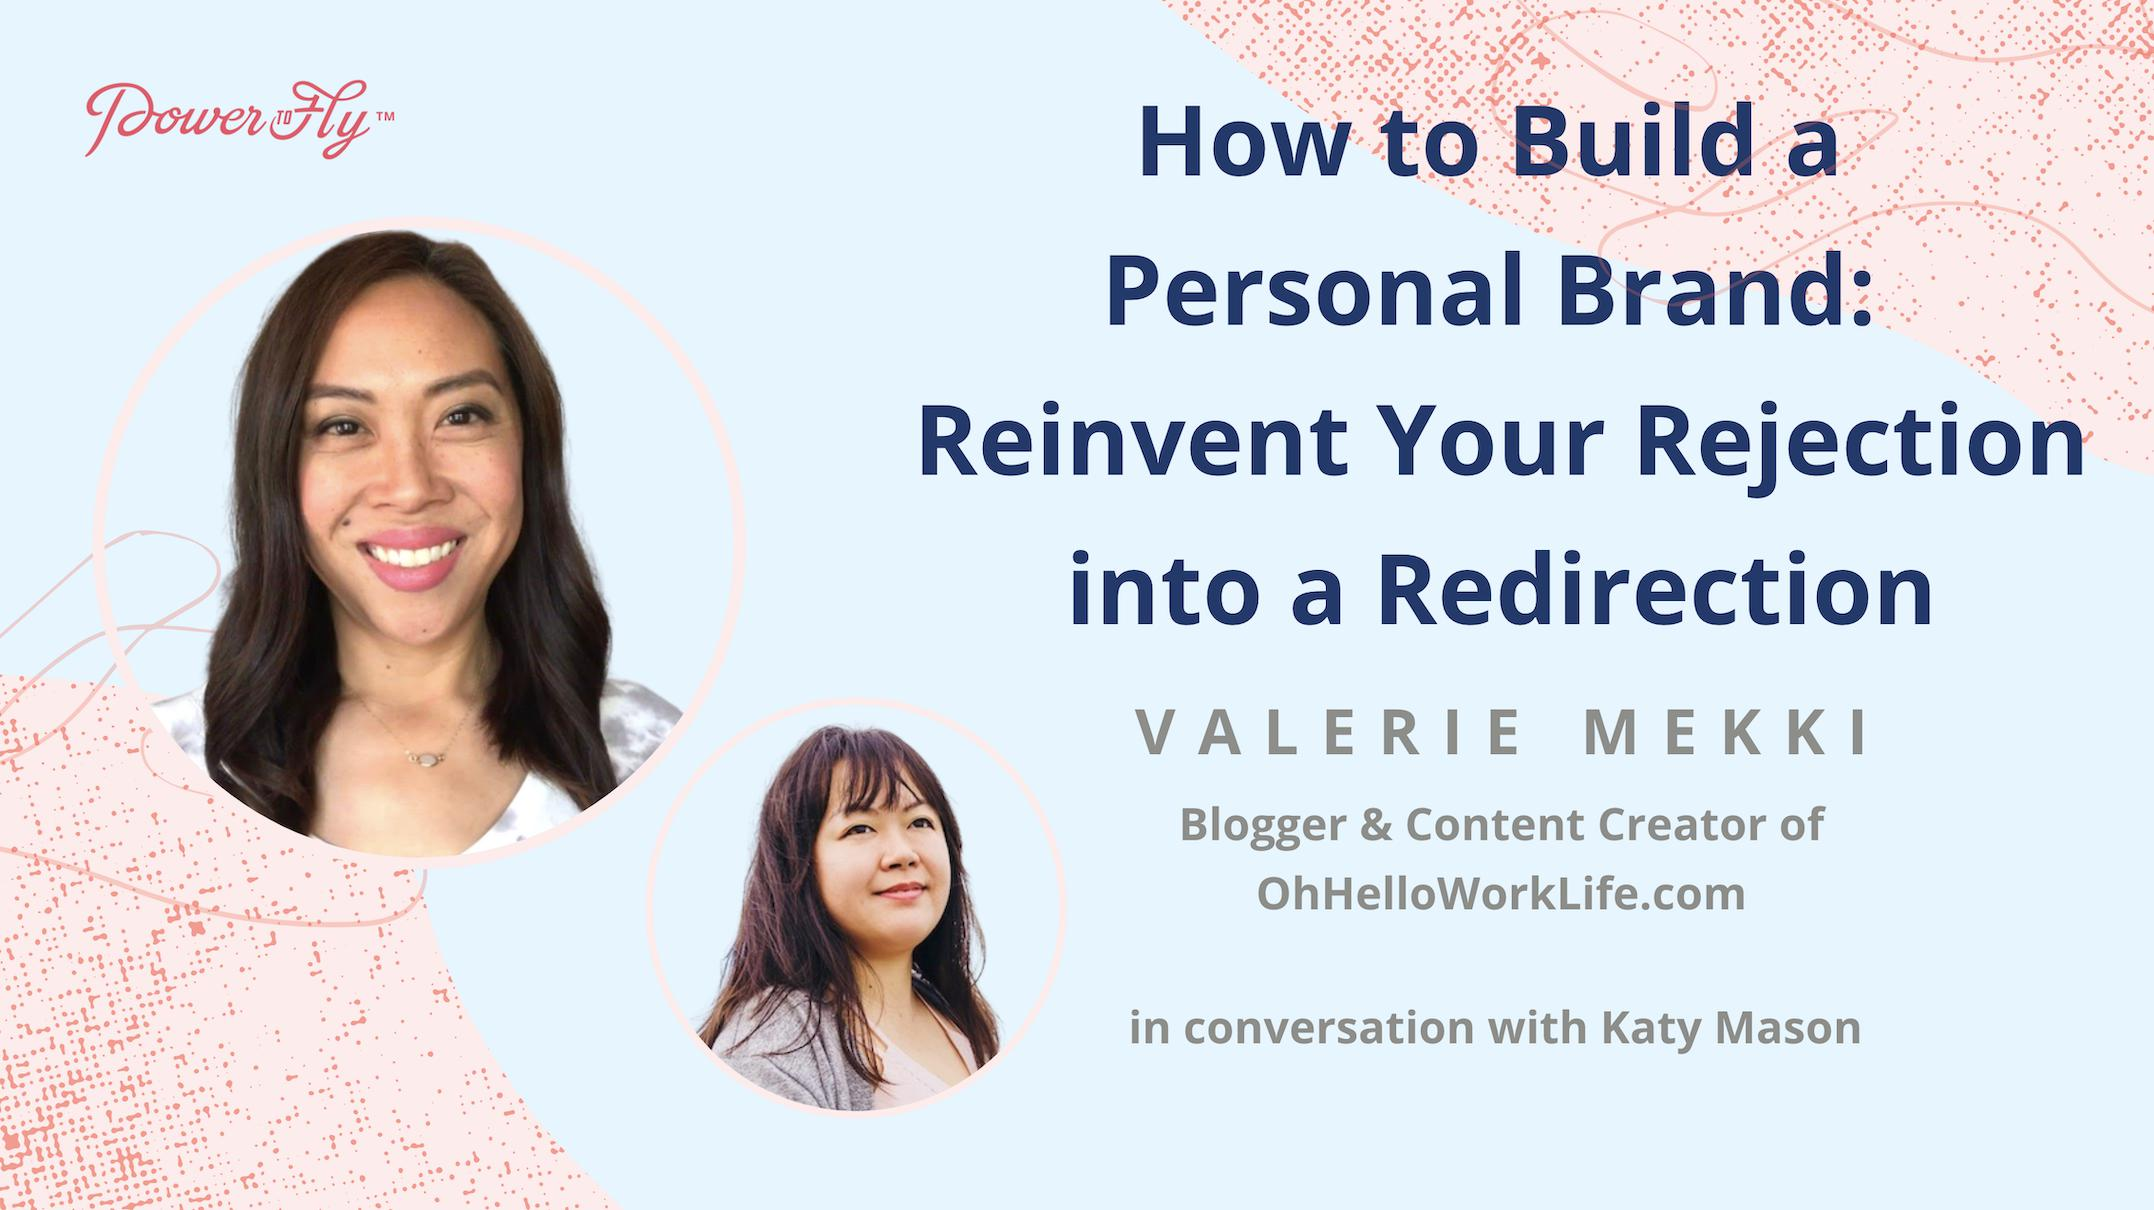 How to Build a Personal Brand: Reinvent Your Rejection into Redirection